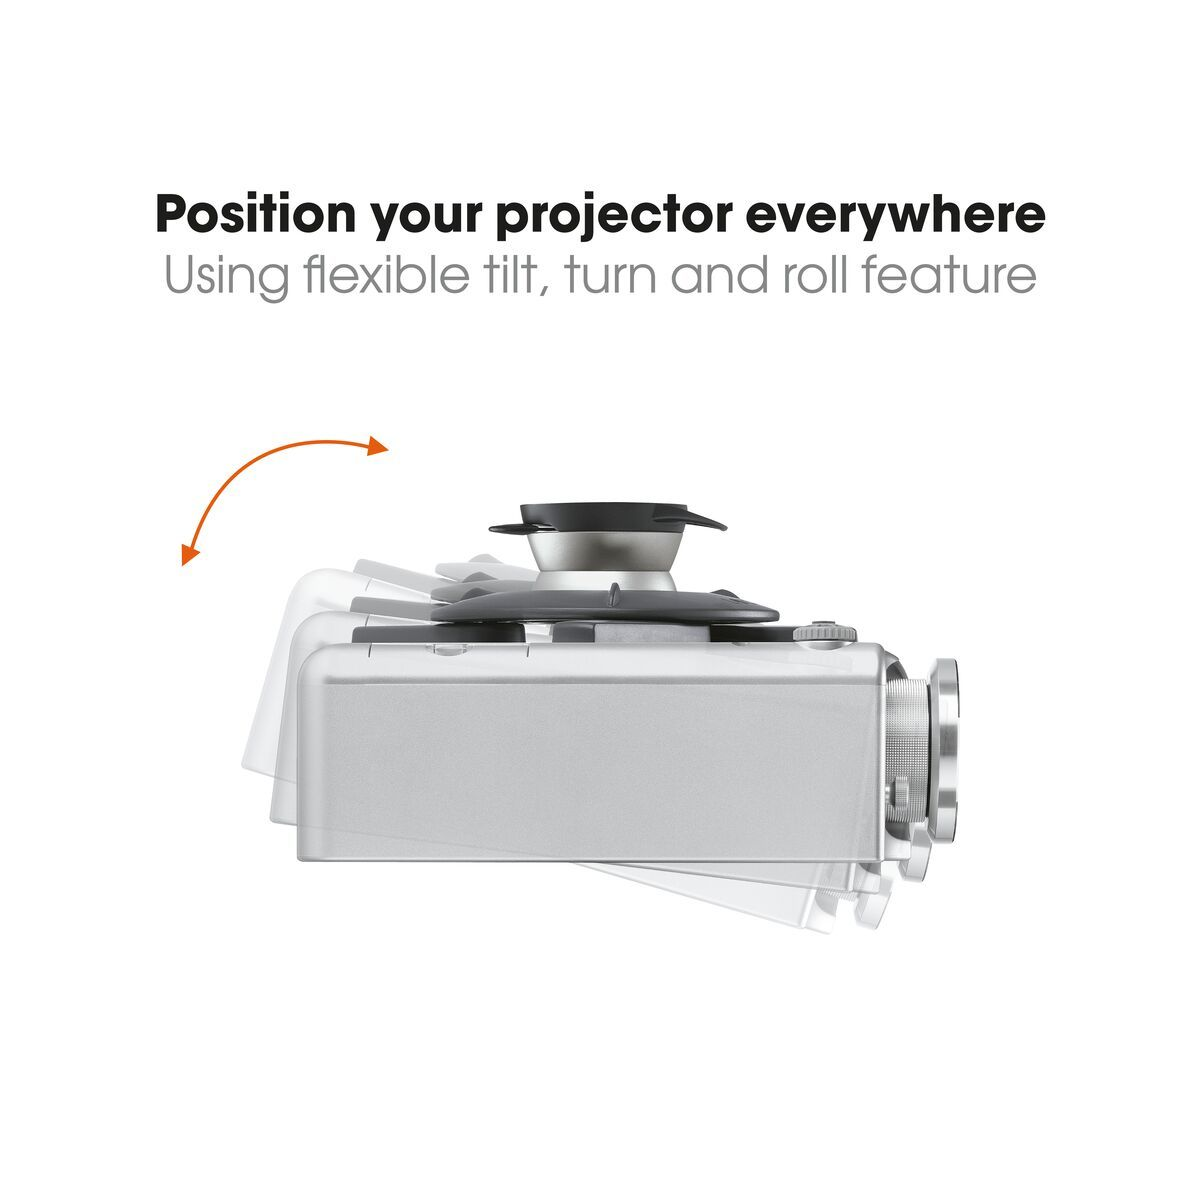 Vogel's EPW 6565 Projector Wall Mount - Max. weight load: 10 kg - USP